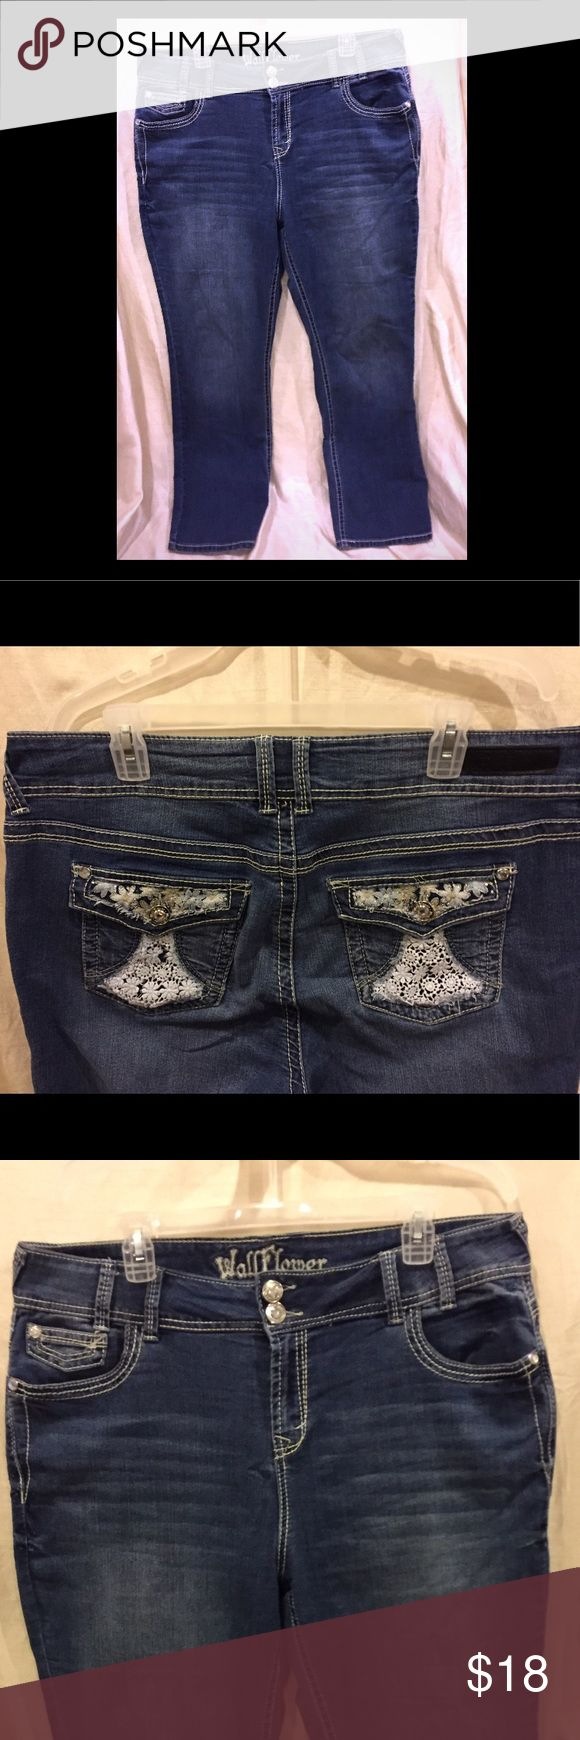 Wallflower Embellished jeans size 16 Wallflower straight leg Jean size 16 Please see pictures for details. GUC Wallflower Jeans Straight Leg